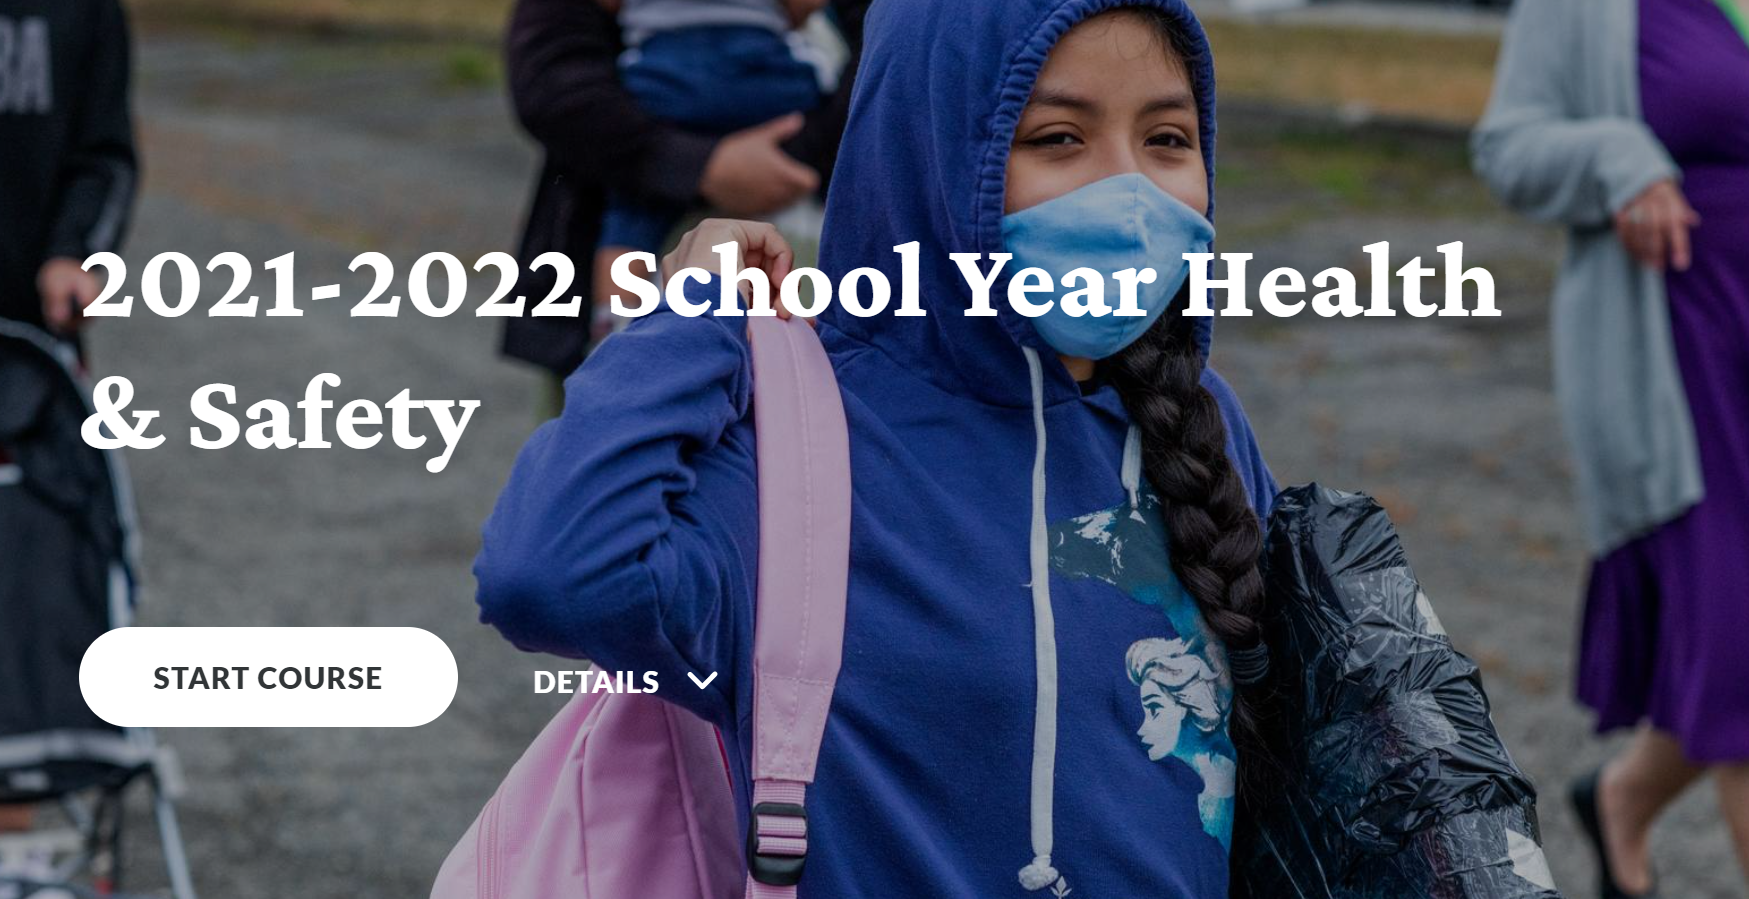 Health Course Cover - student wearing a mask and a backpack arriving at the school.